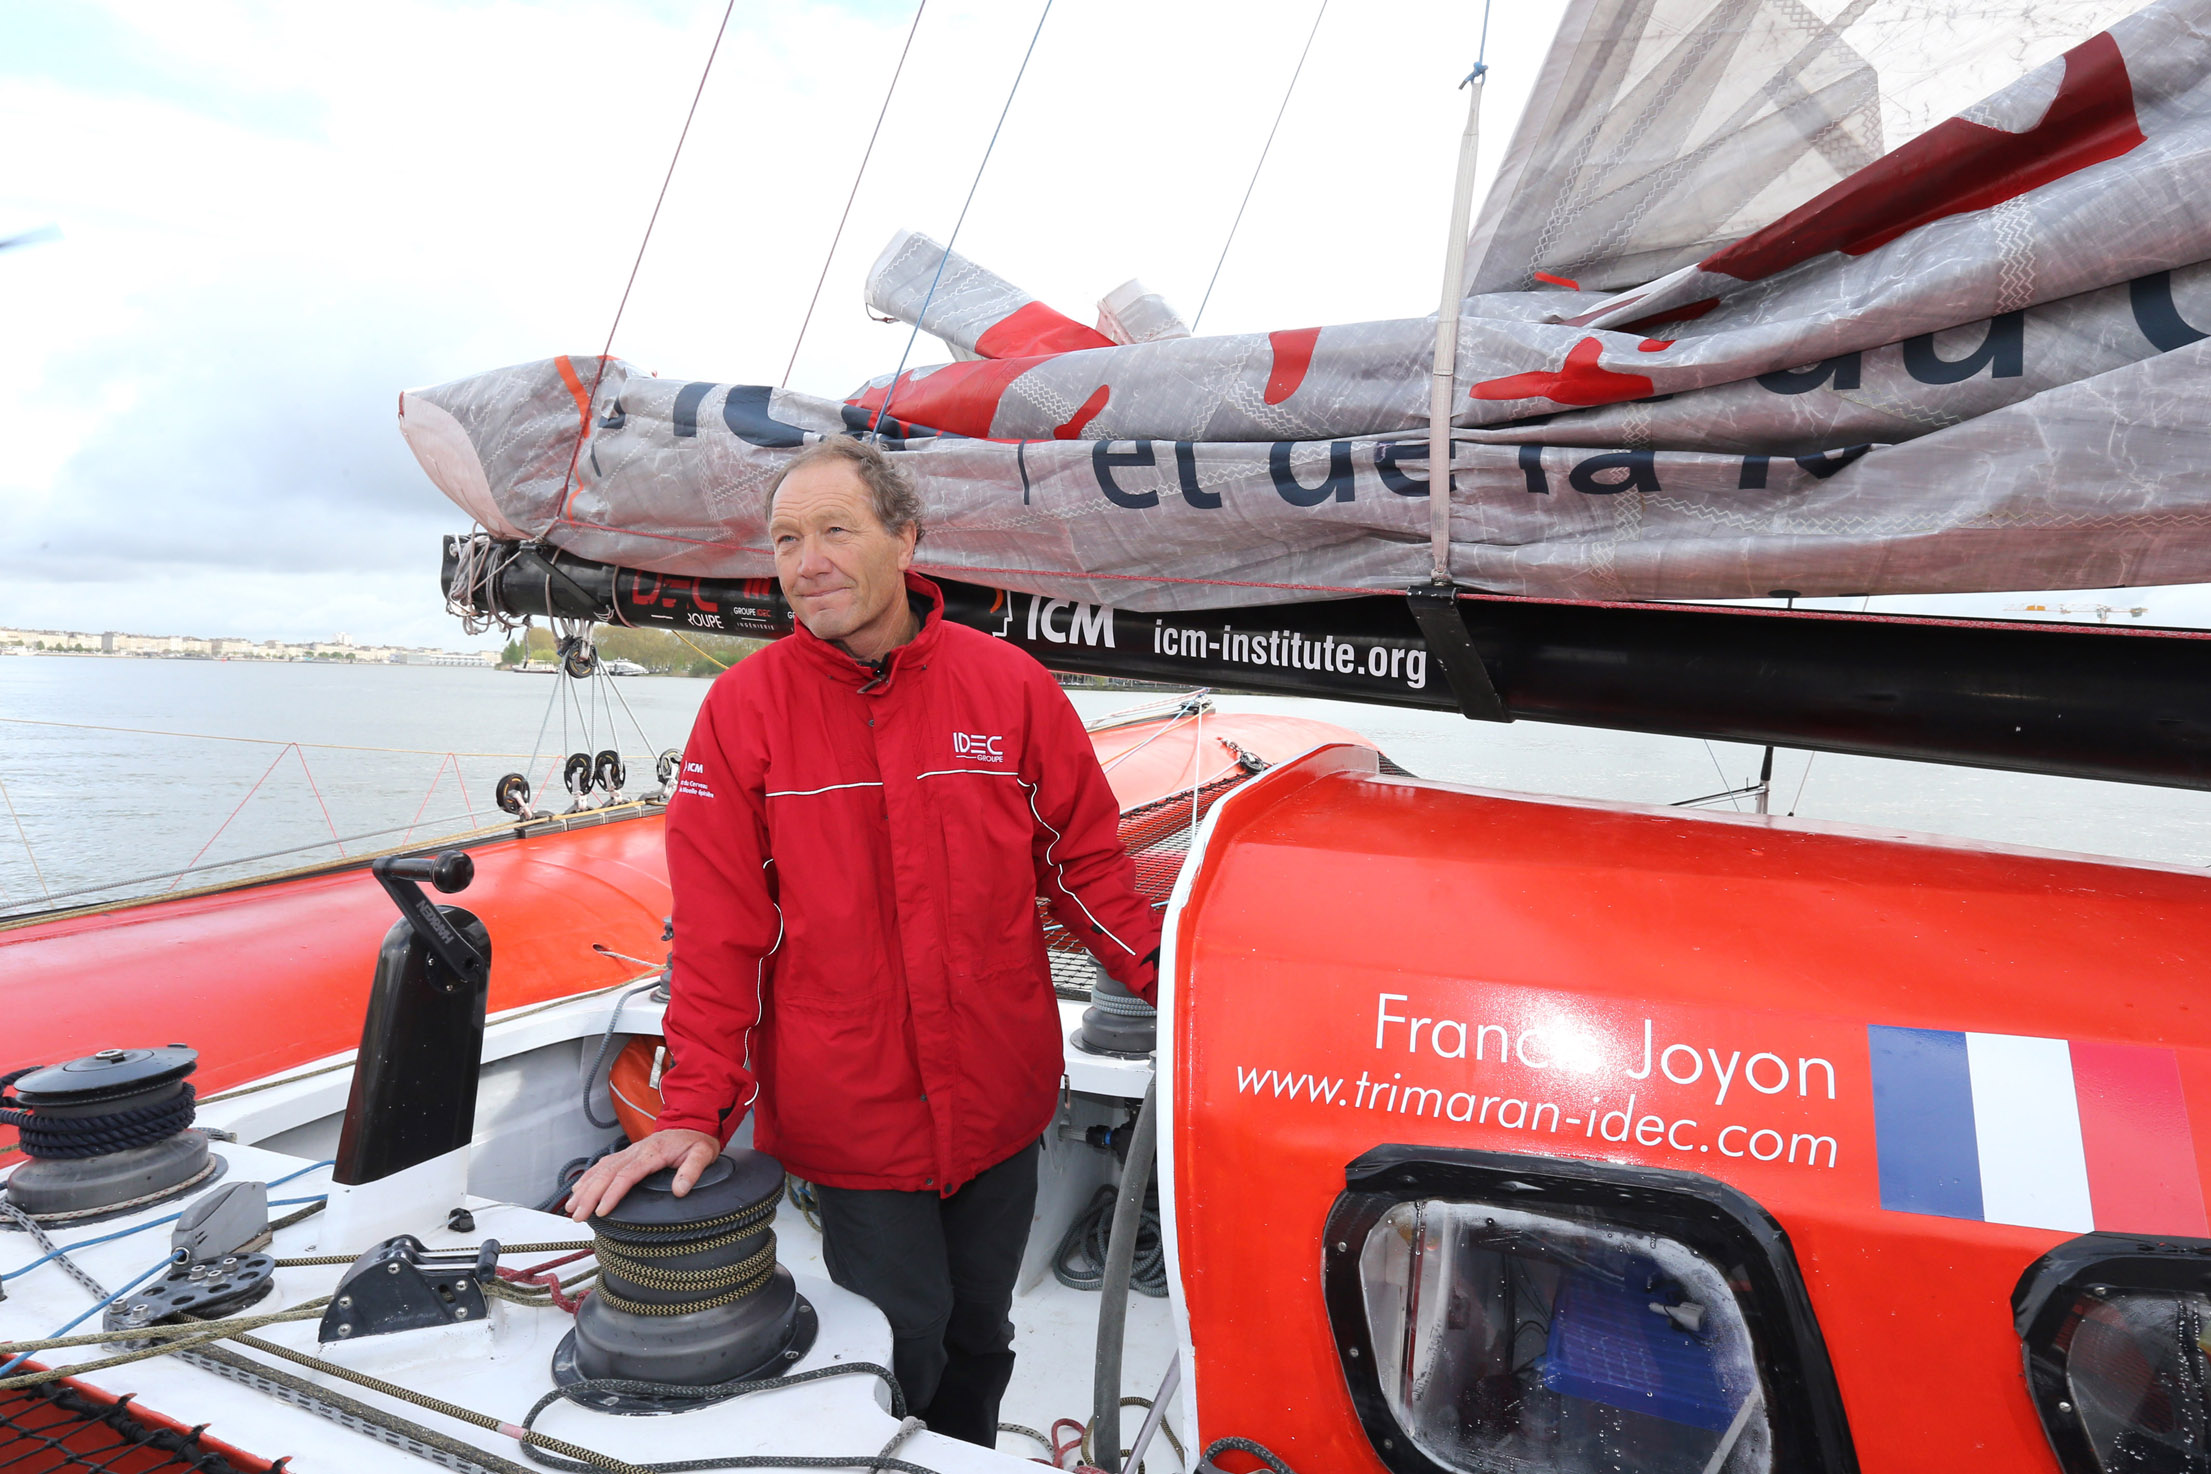 SAILING - NEW FRANCE BRAZIL RECORD FOR IDEC